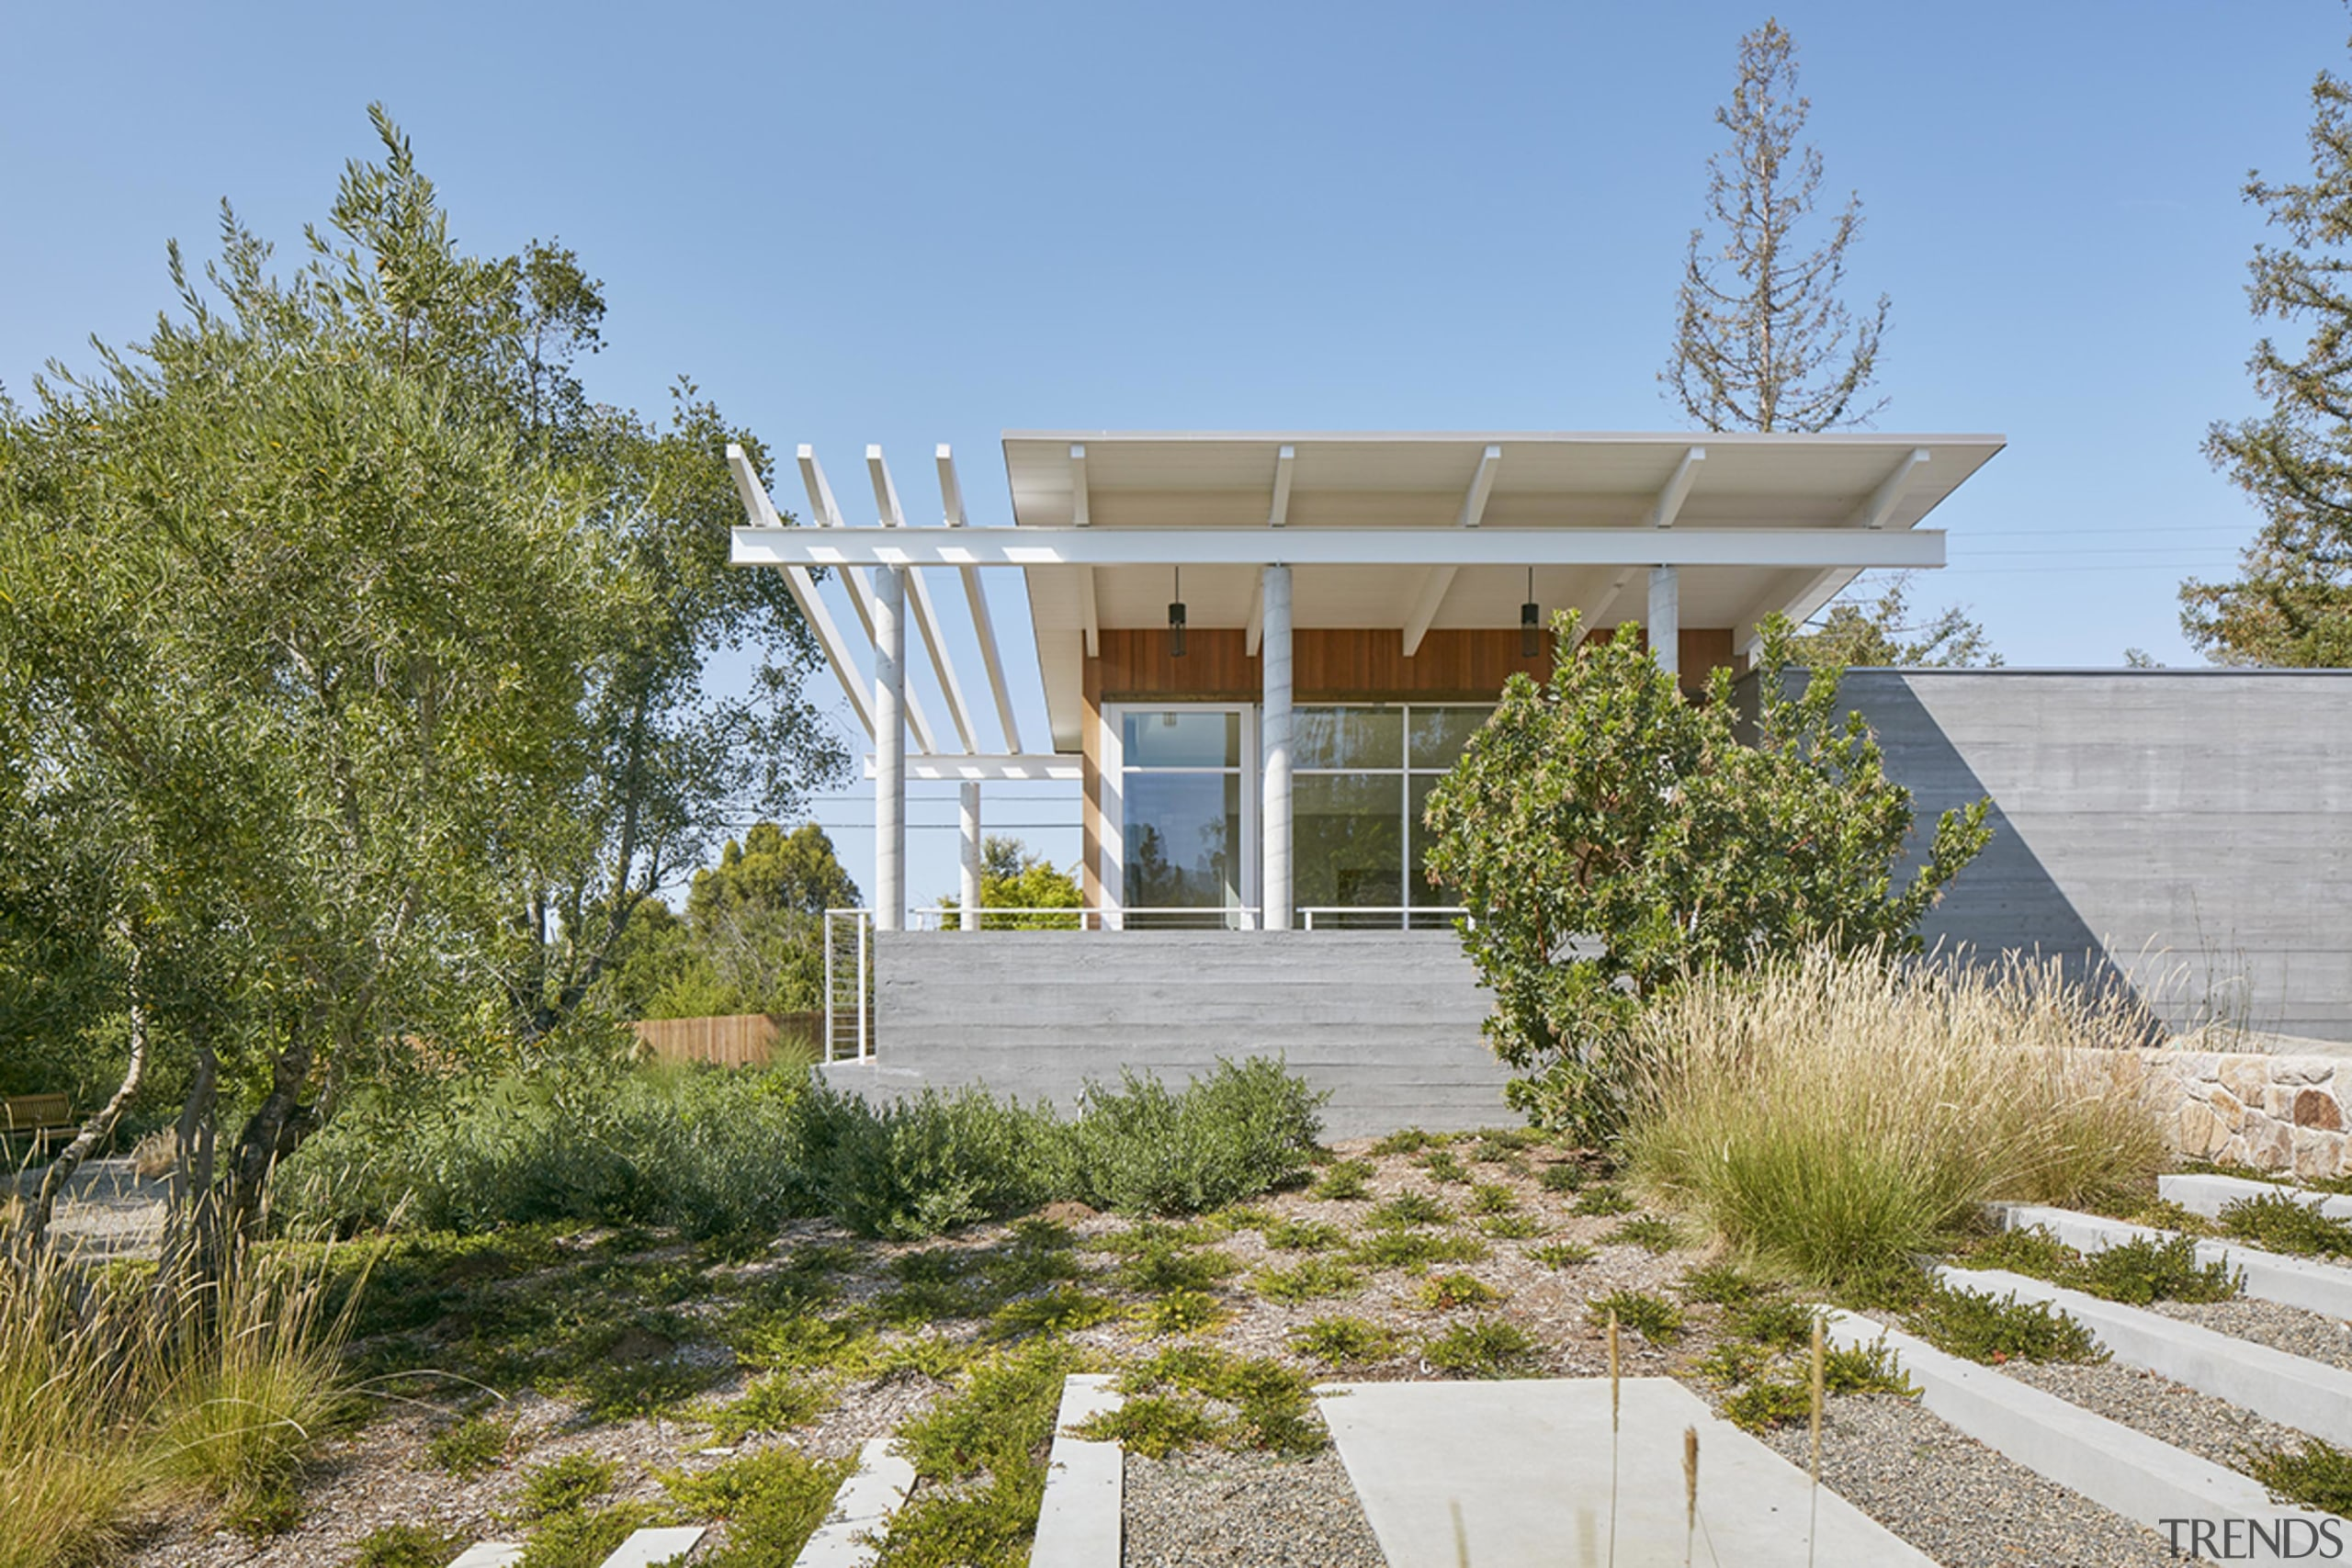 Native landscaping by Ground Studio Landscape Architecture gives